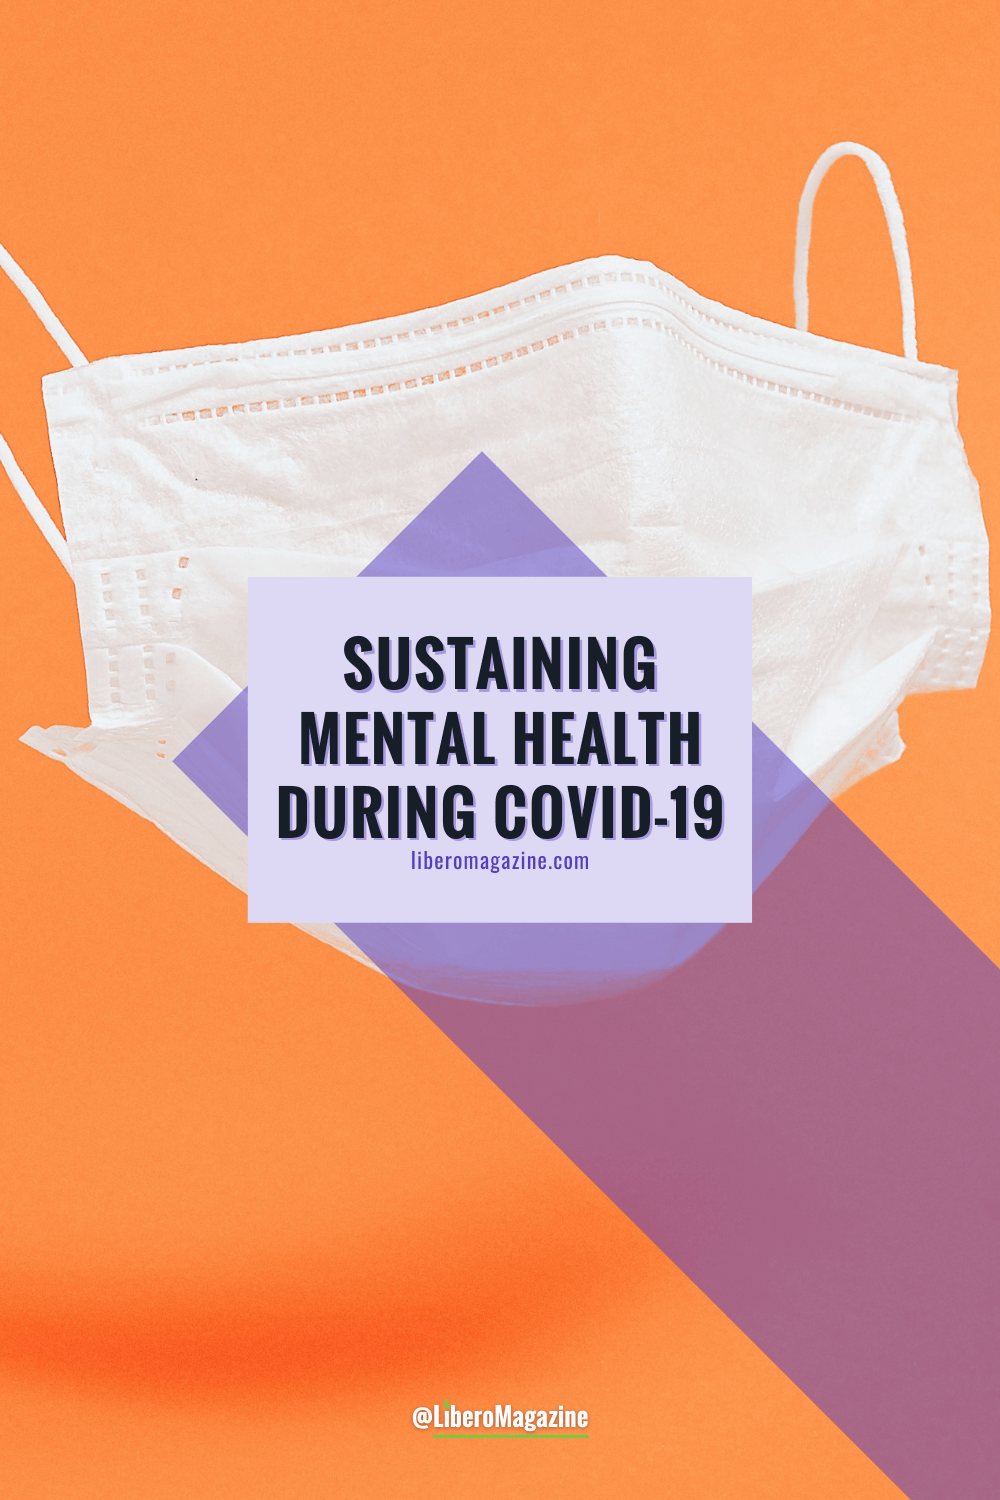 sustaining mental health during covid-19 pin